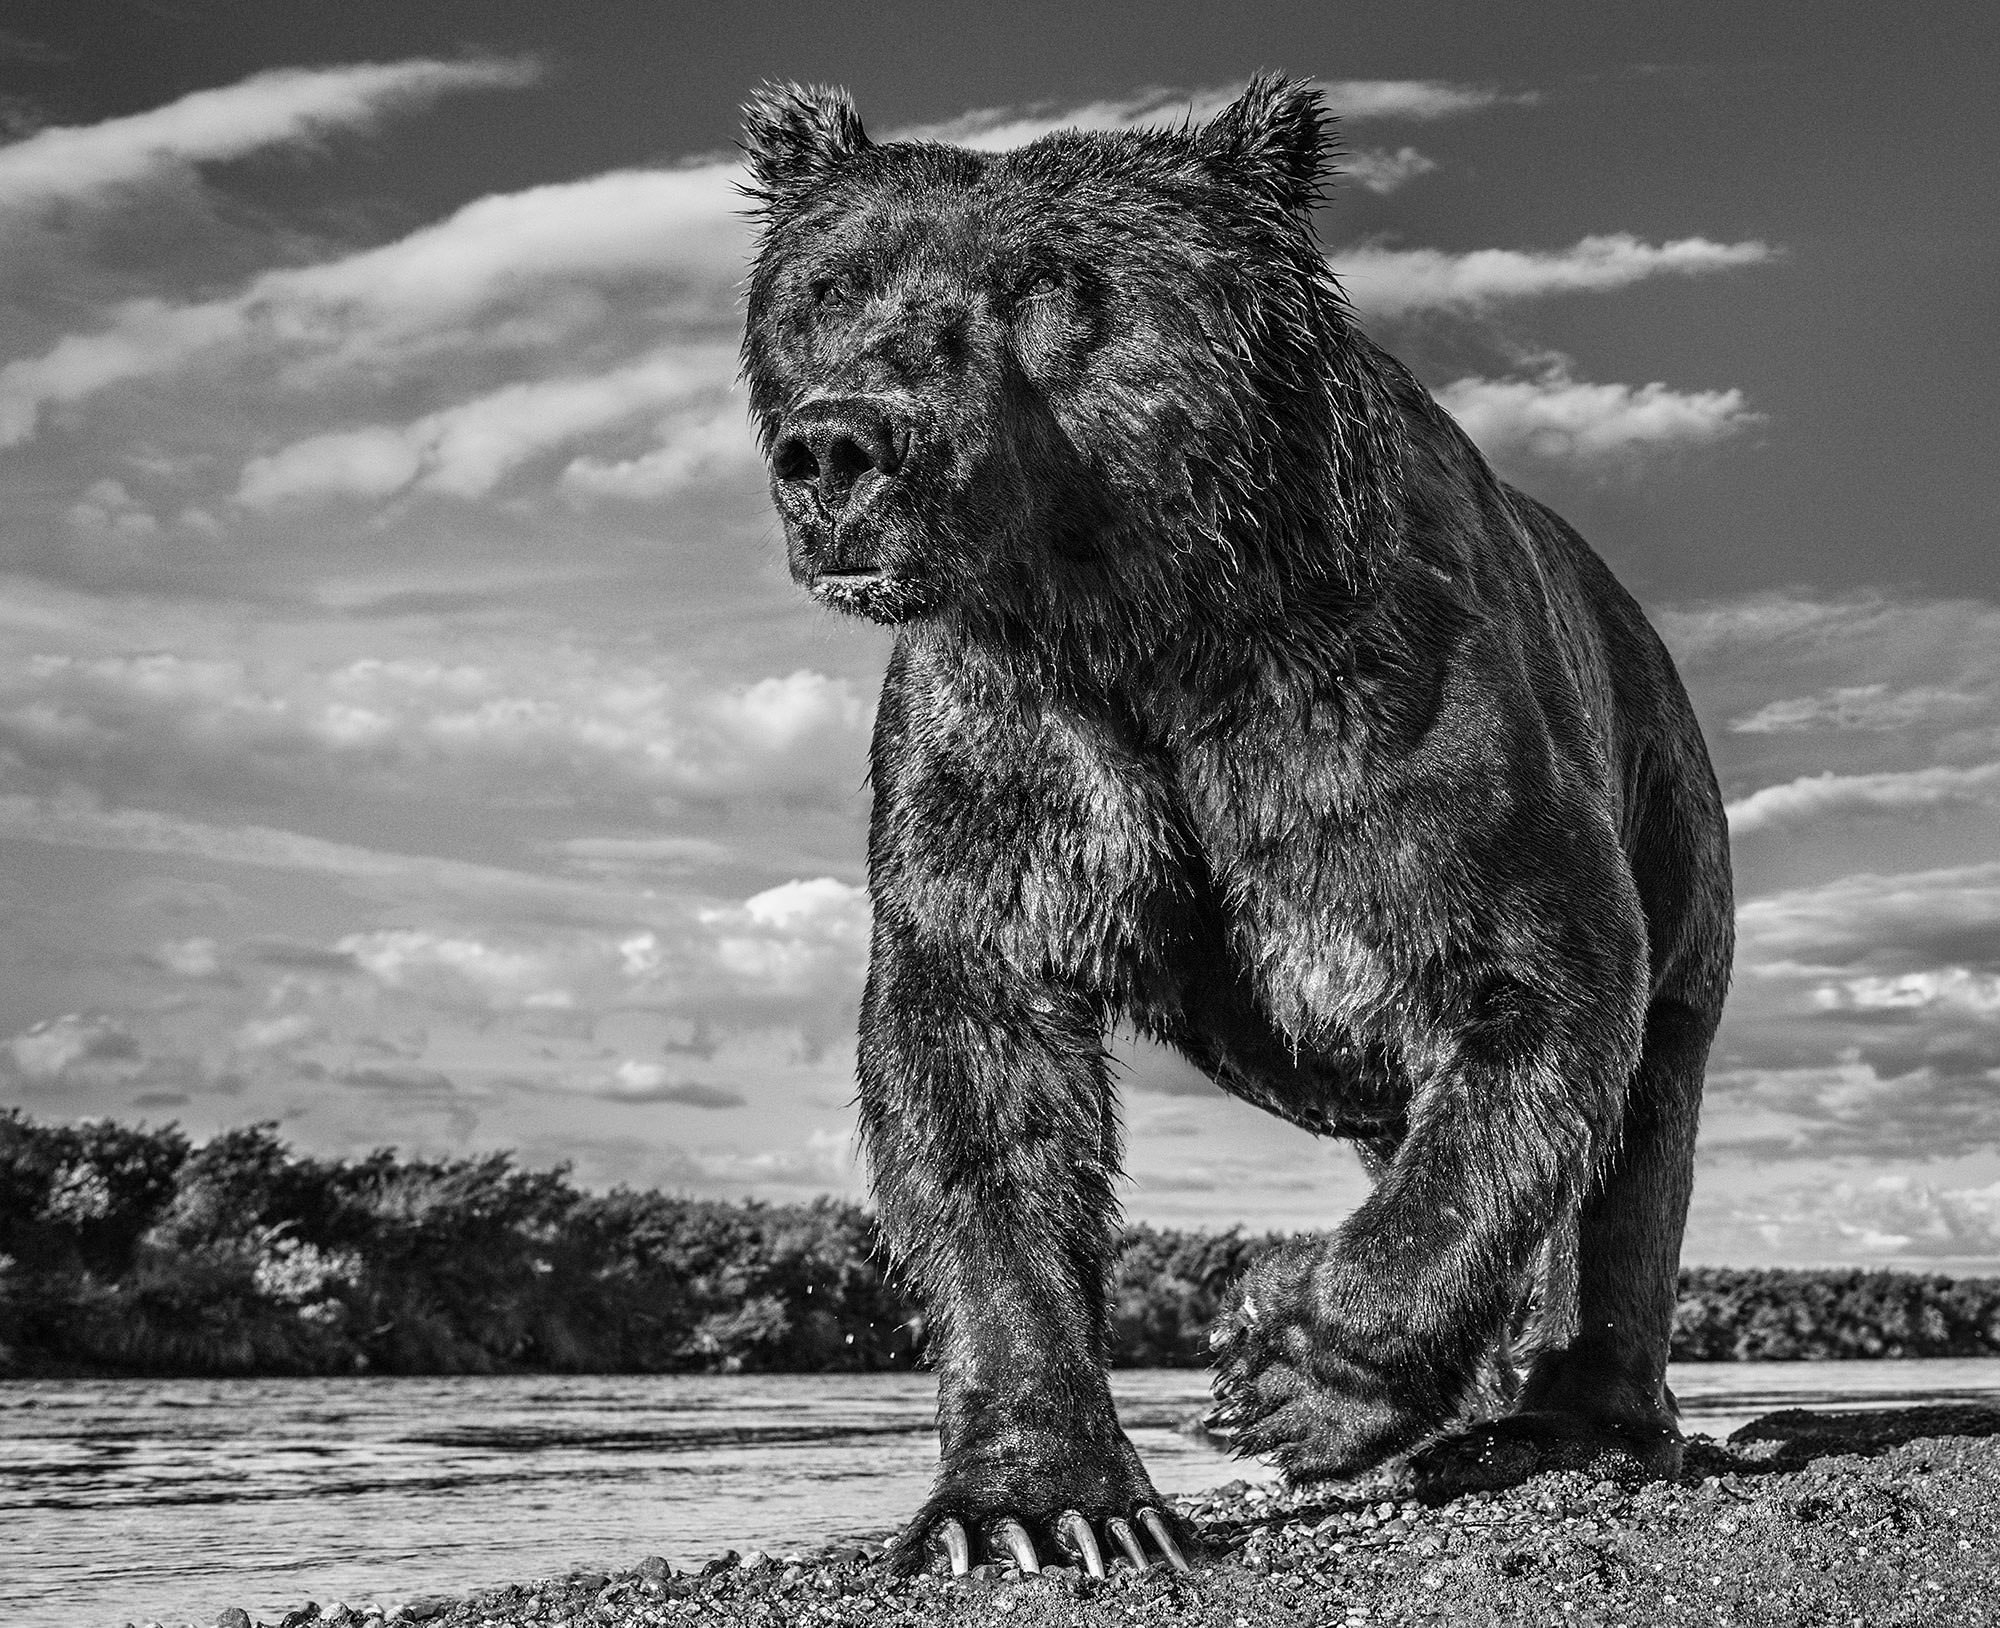 Astonishing Images of Wildlife That Can Help You Raise Your Game | Geek Universe